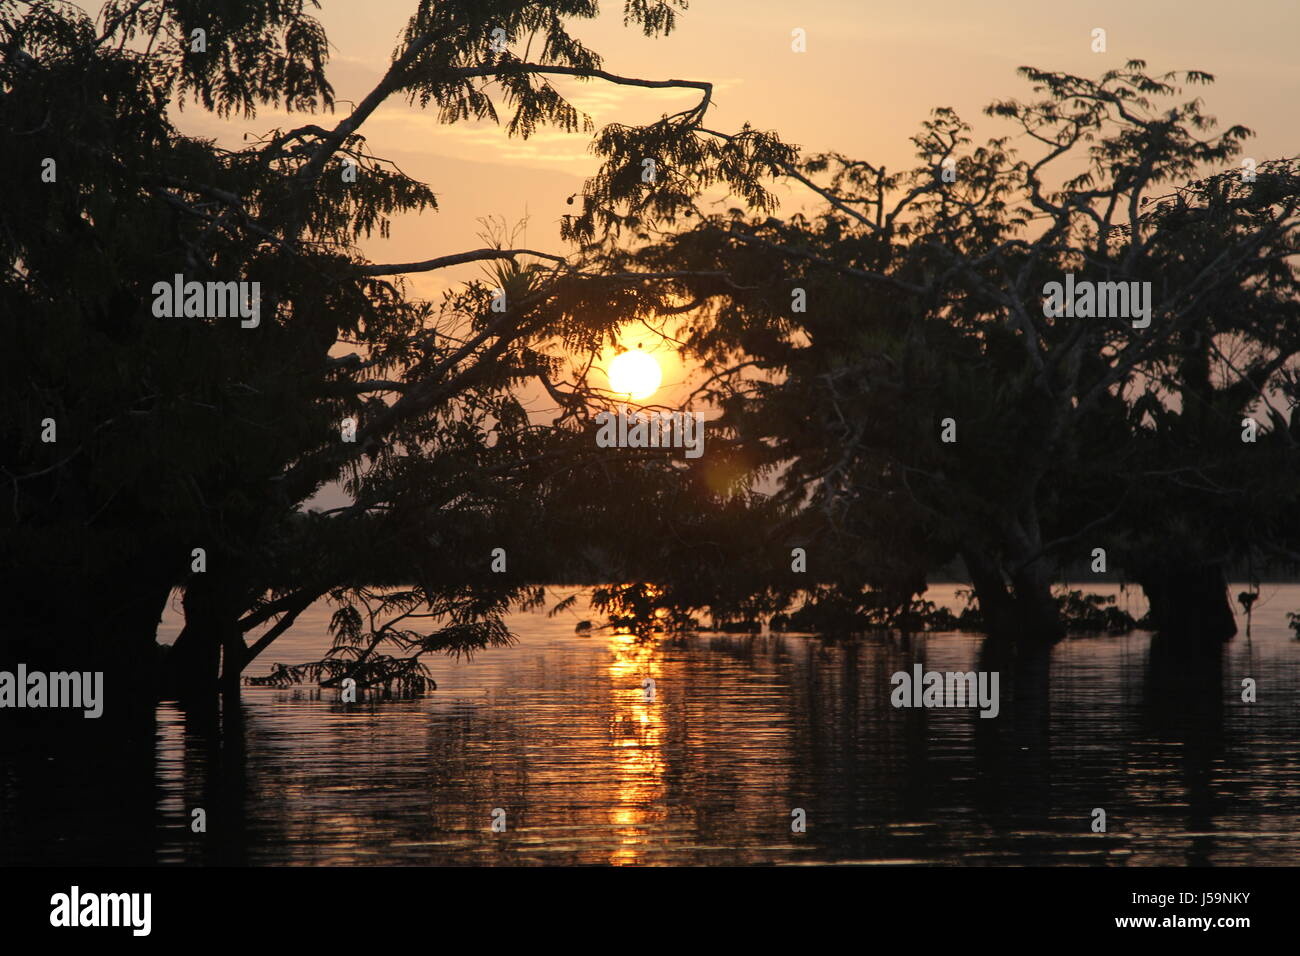 Amazon-Sonnenuntergang Stockbild